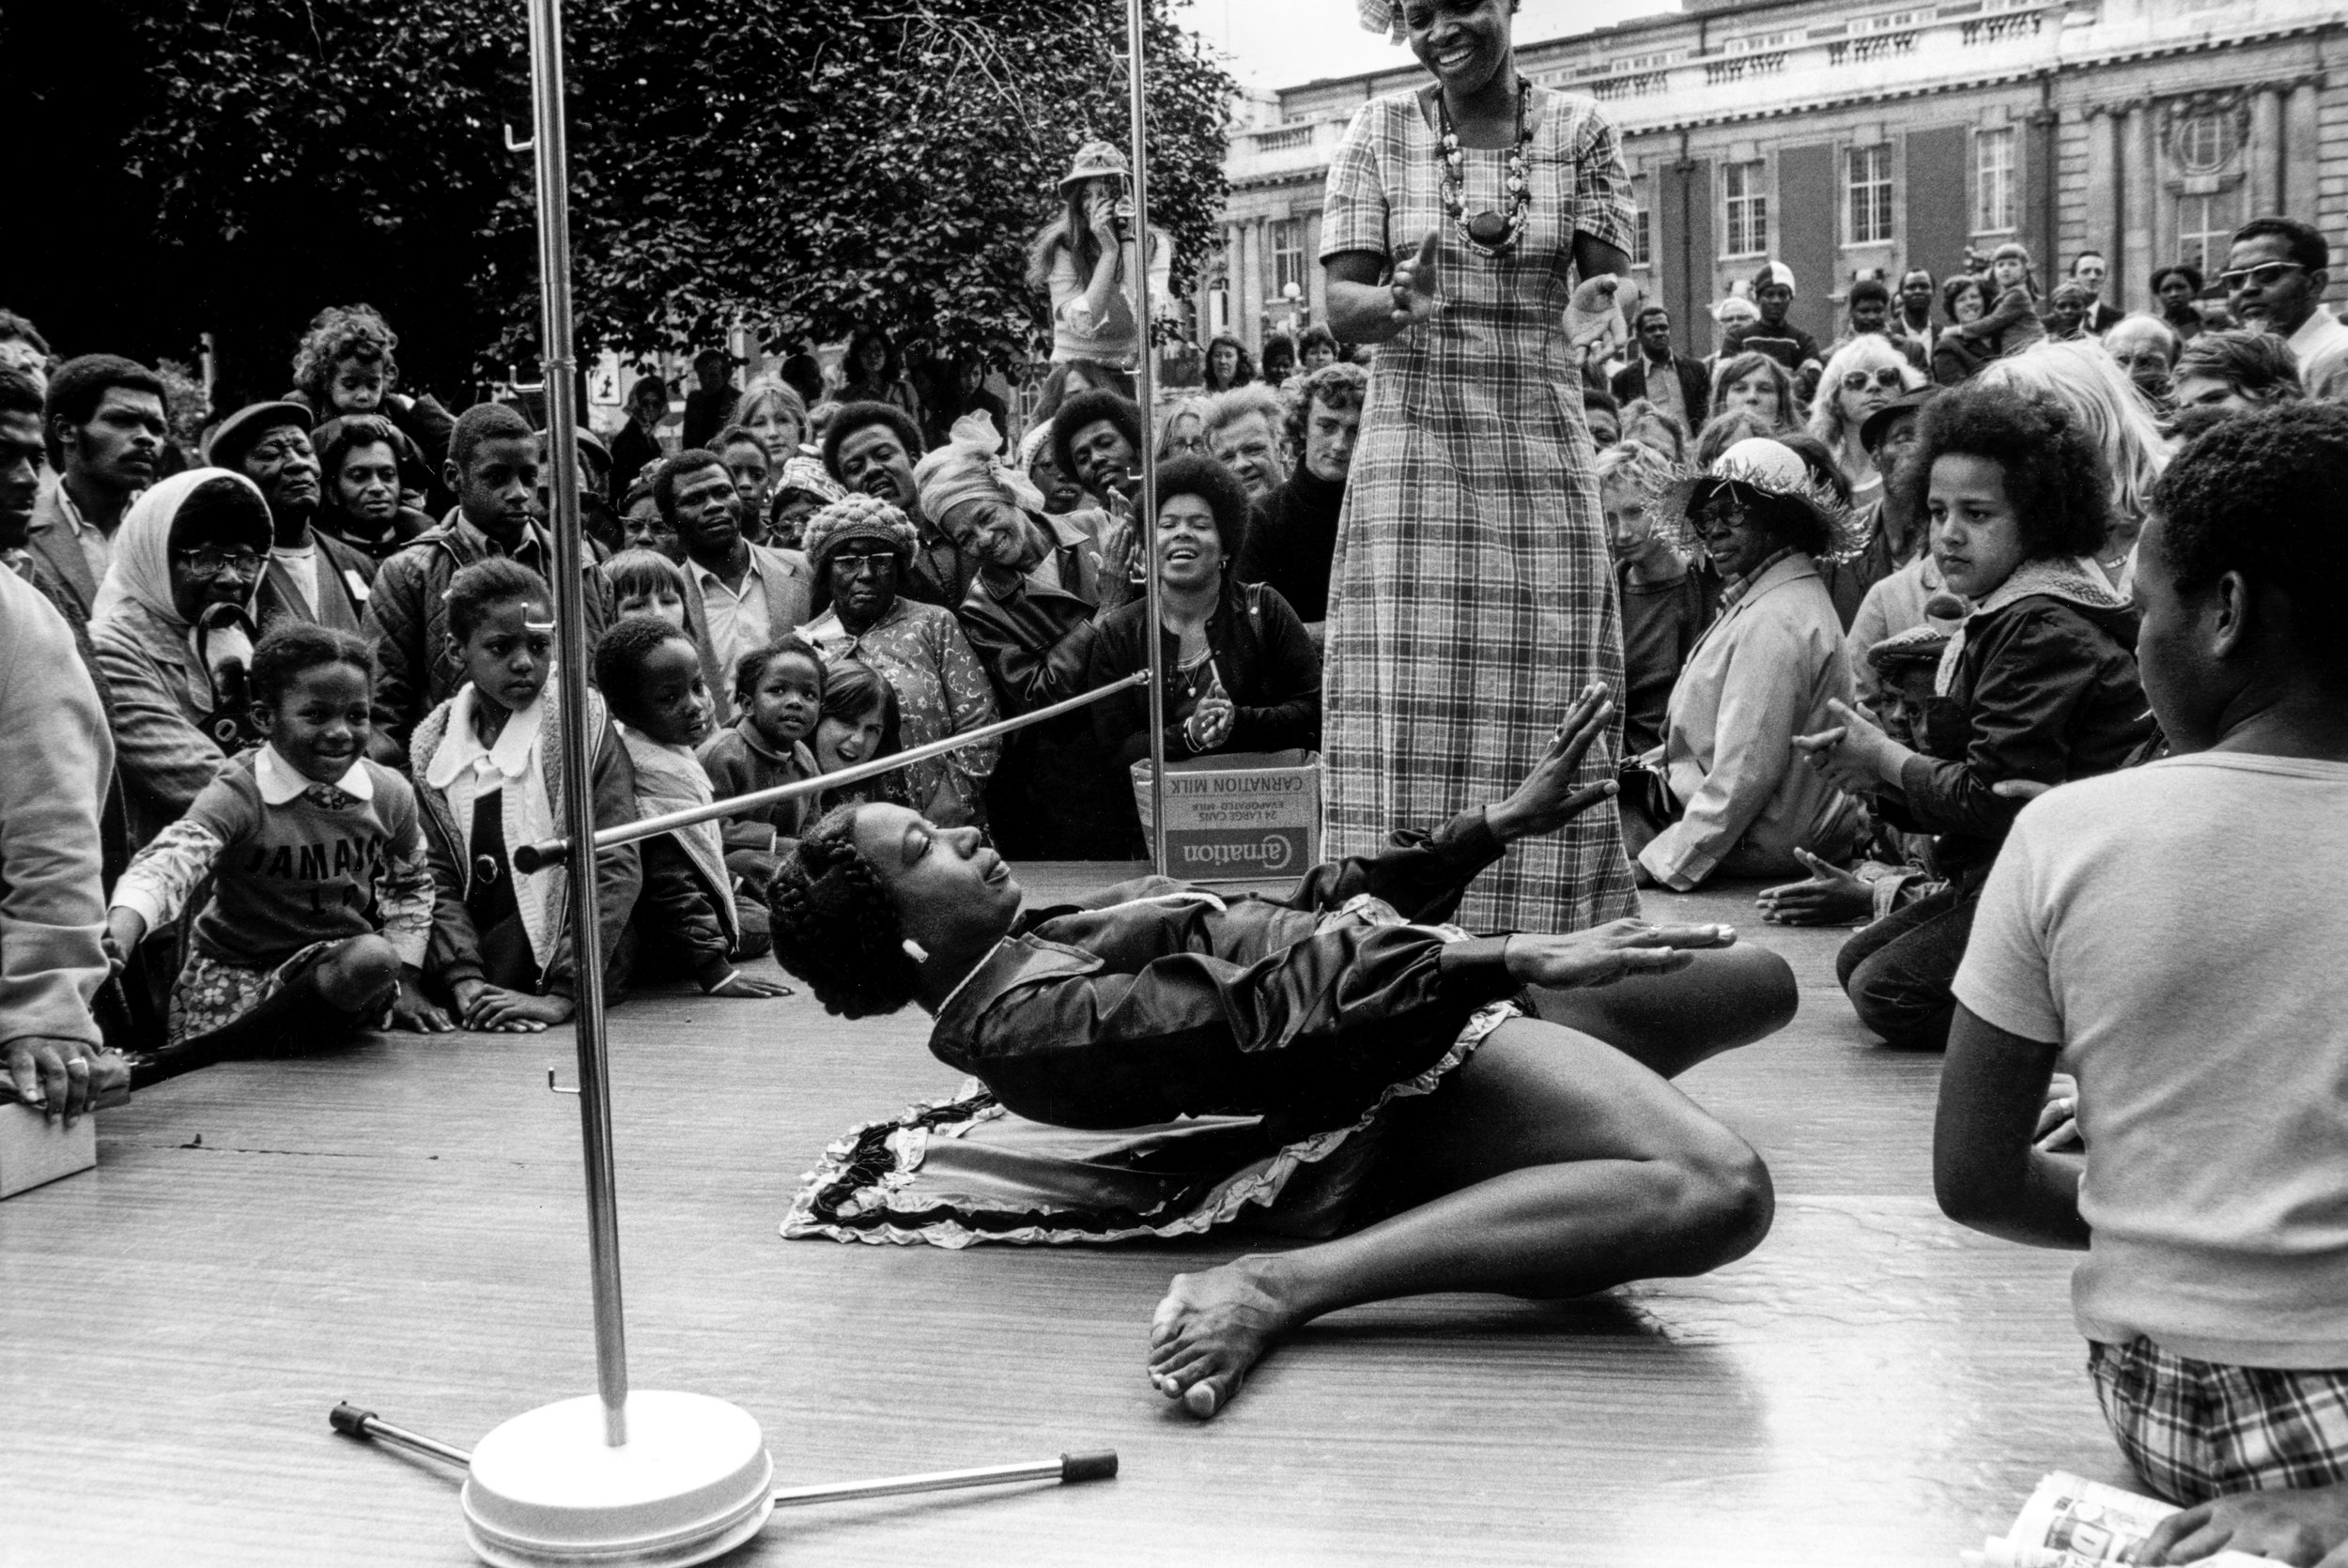 Limbo competition at Brixton festival, 1974